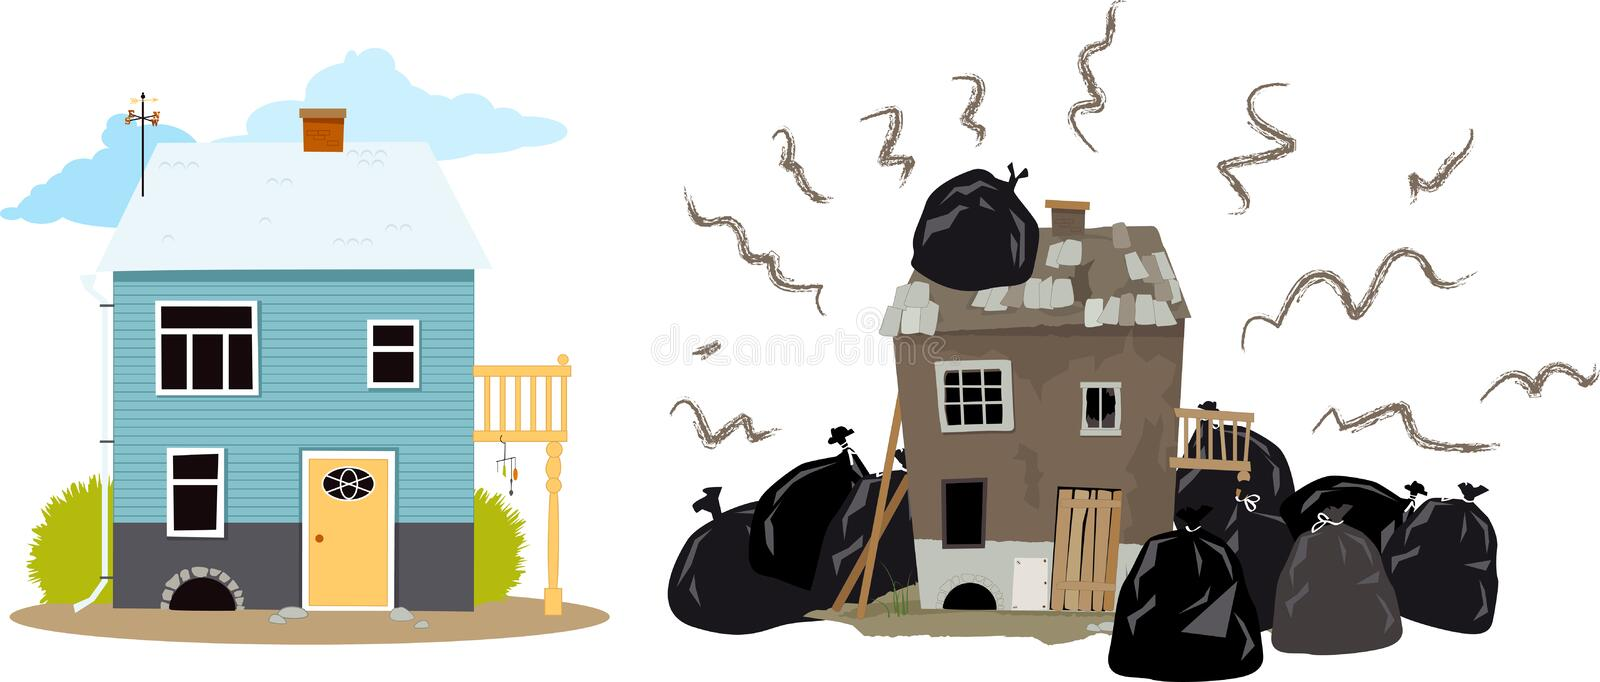 Bad neighbors. Smelly house buried under garbage bags creating problems for it`s neighbors, EPS 8 vector illustration royalty free illustration